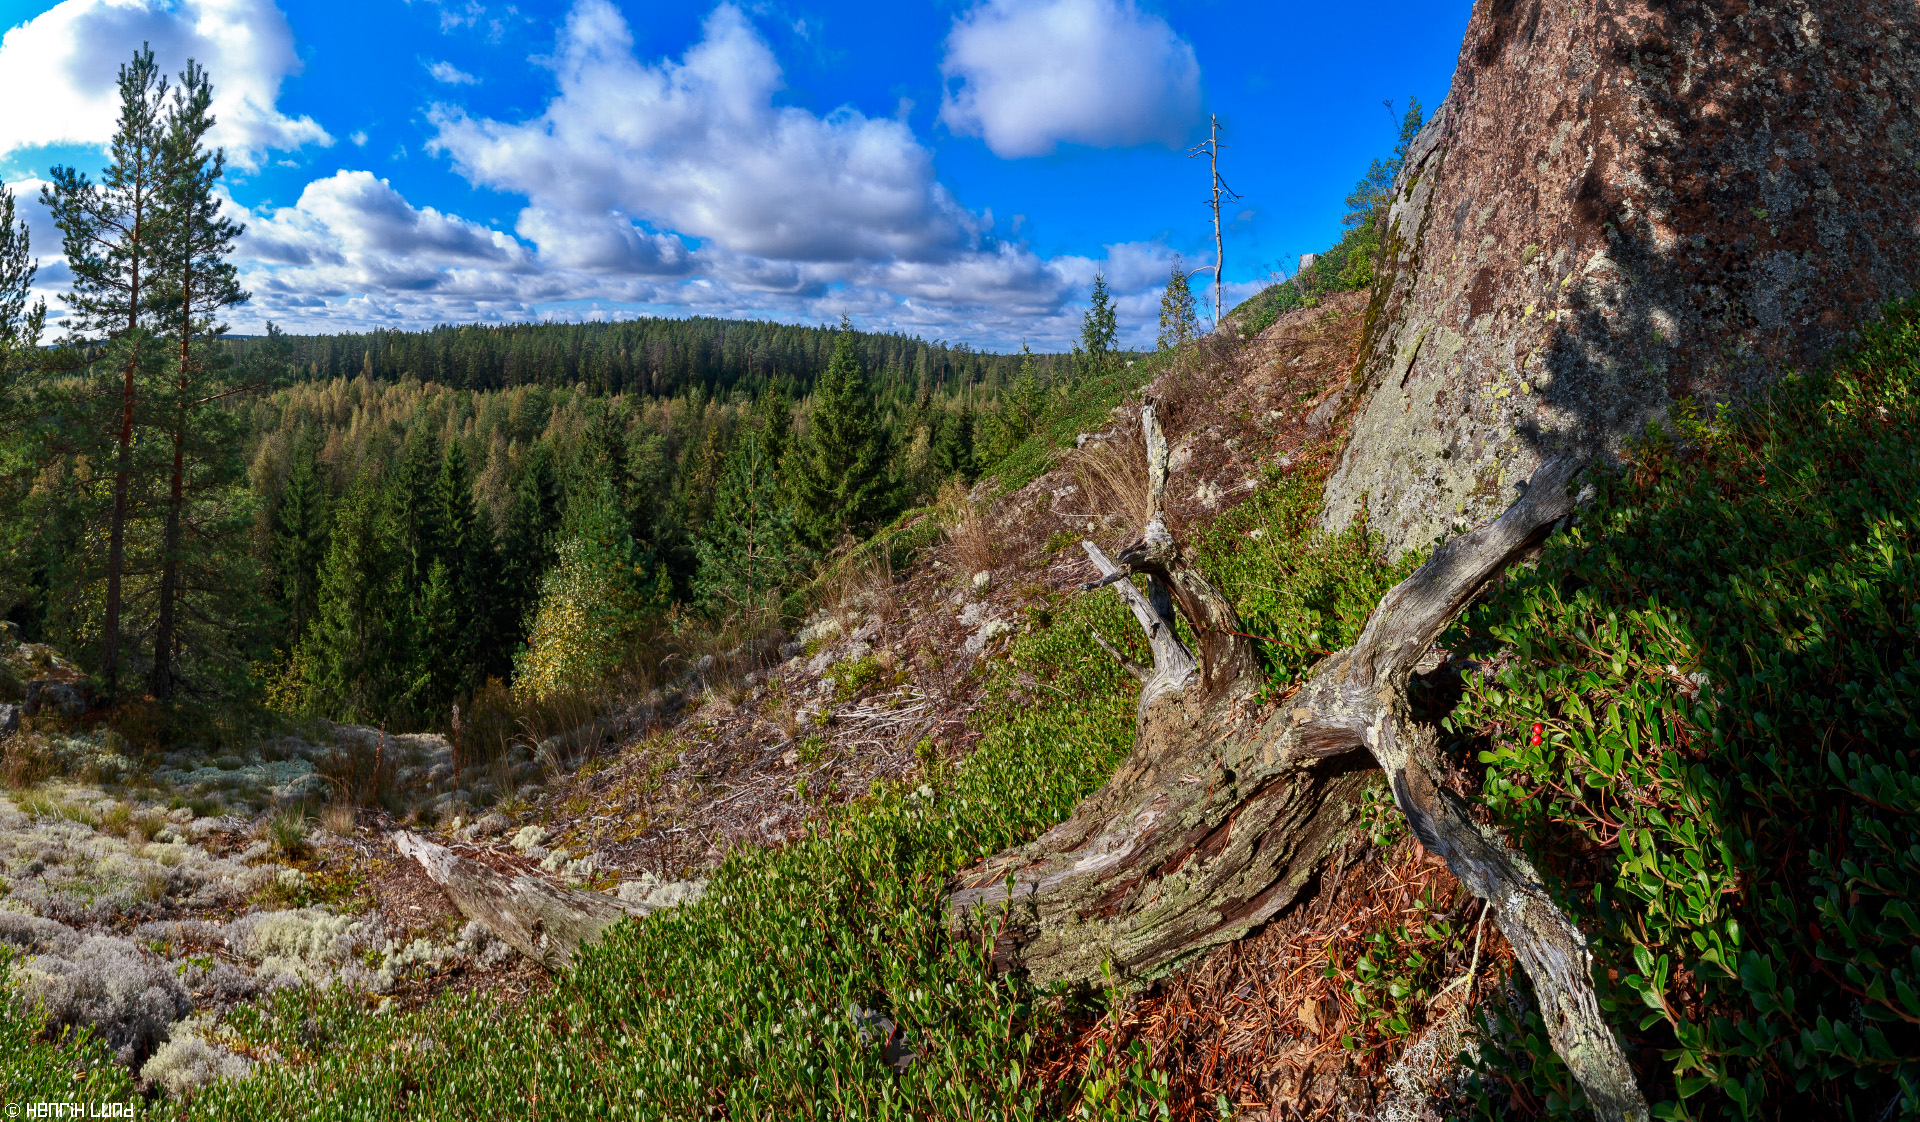 Panoramic view from Falkberget in Norrby, Lappträsk, Finland, September 2014.